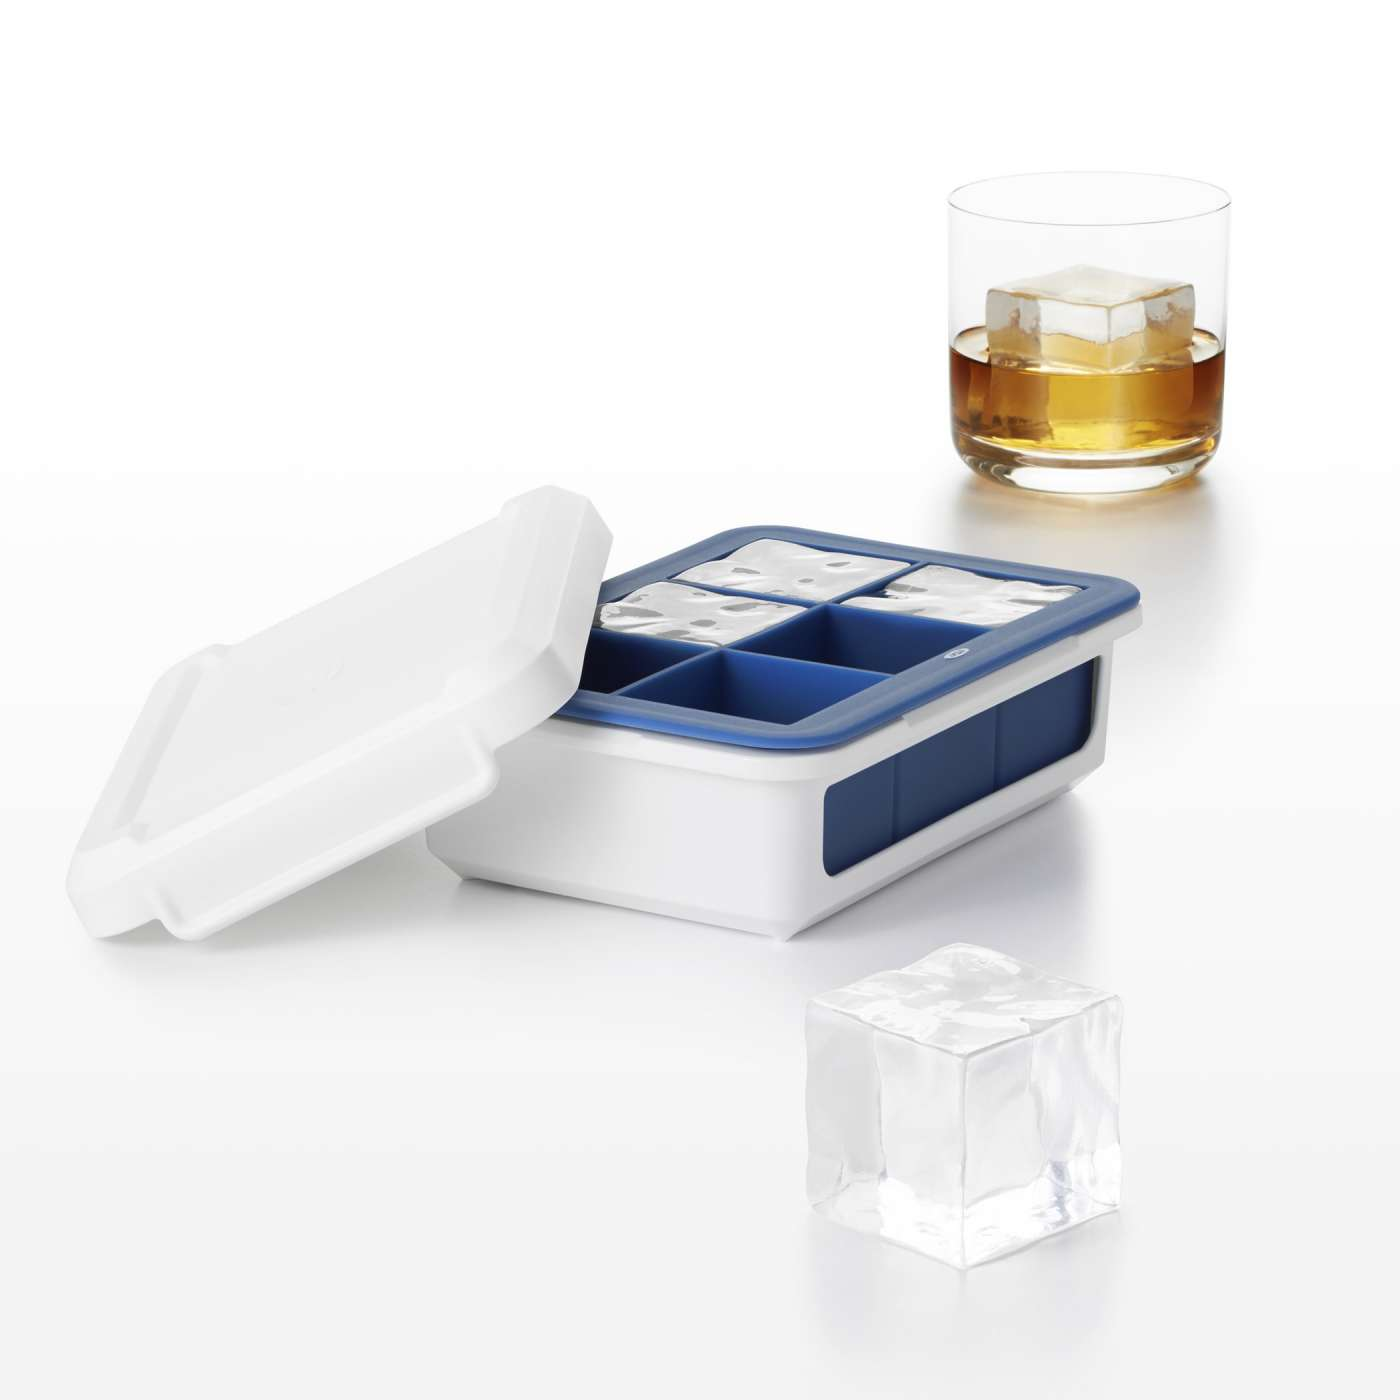 Covered Silicone Ice Cube Tray Large Cube